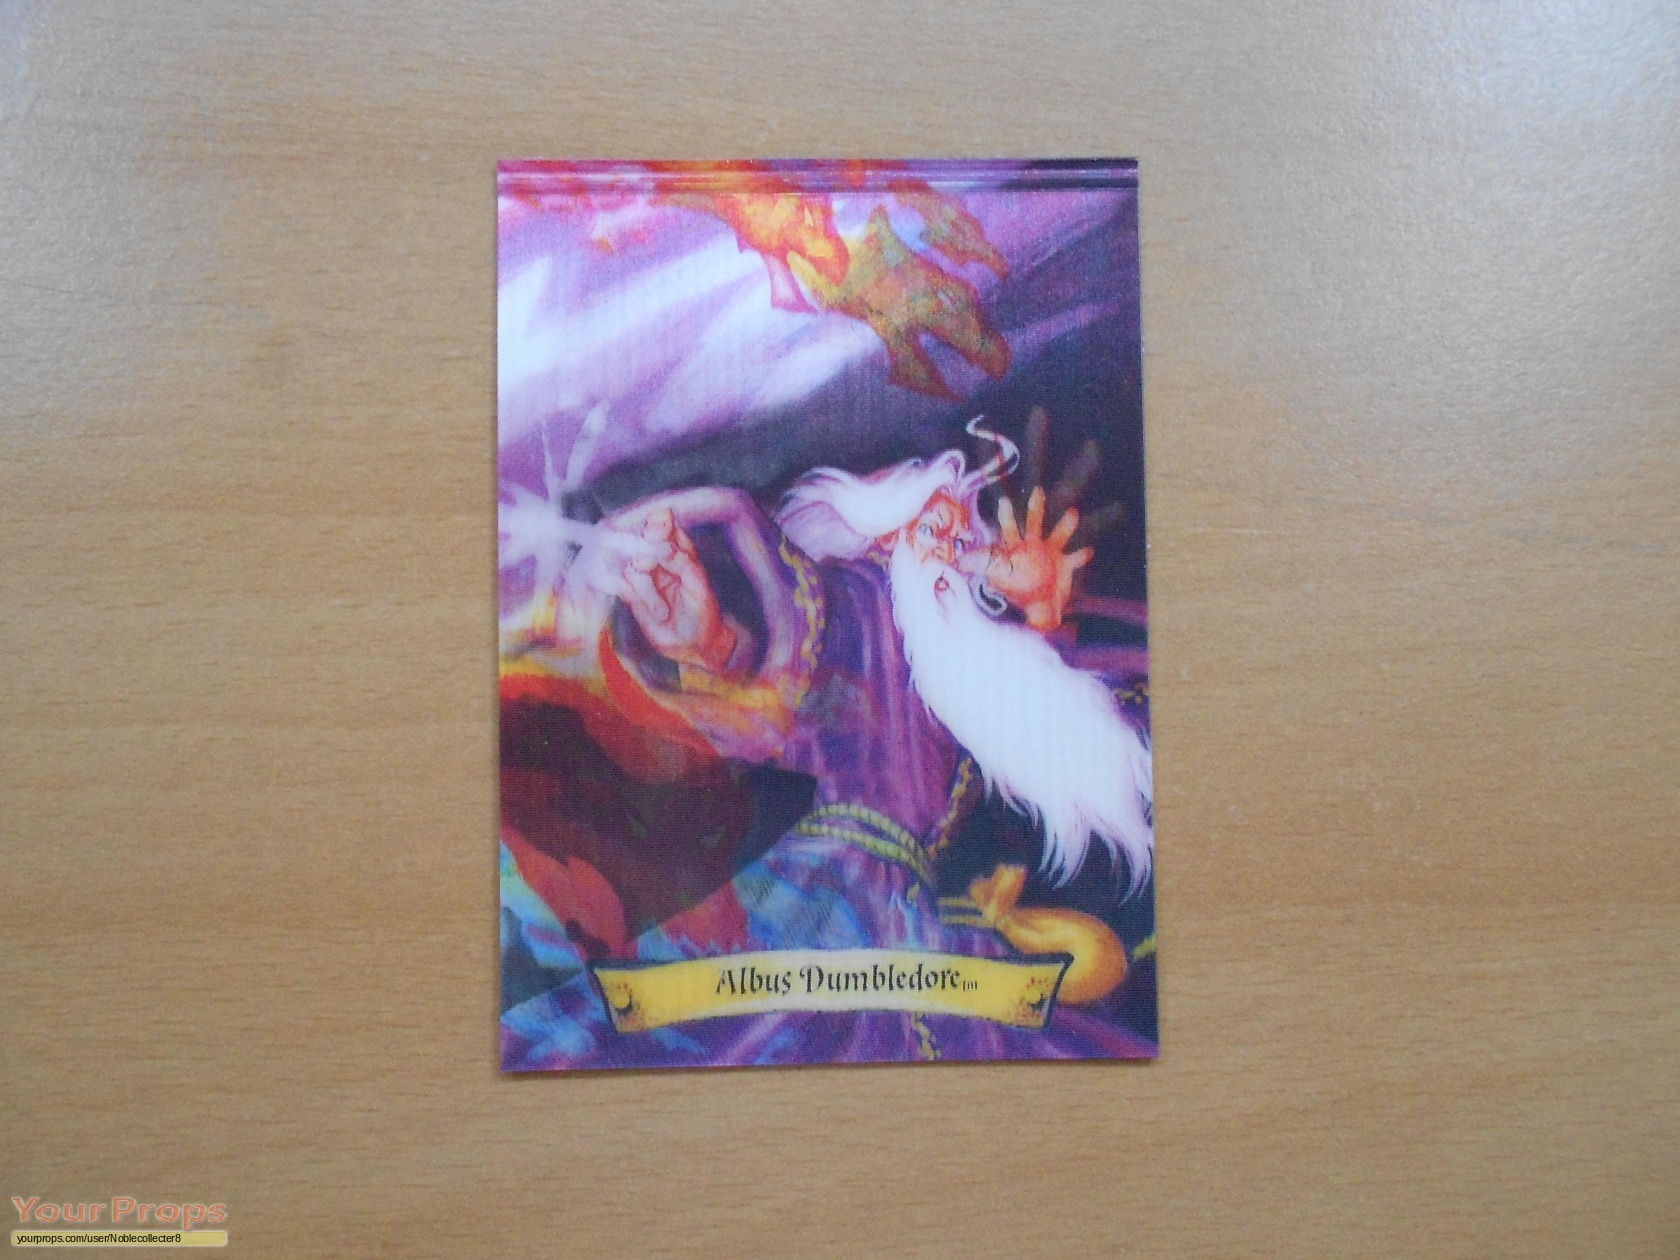 Harry Potter movies The Albus Dumbledore (Chocolate frog) Card ...